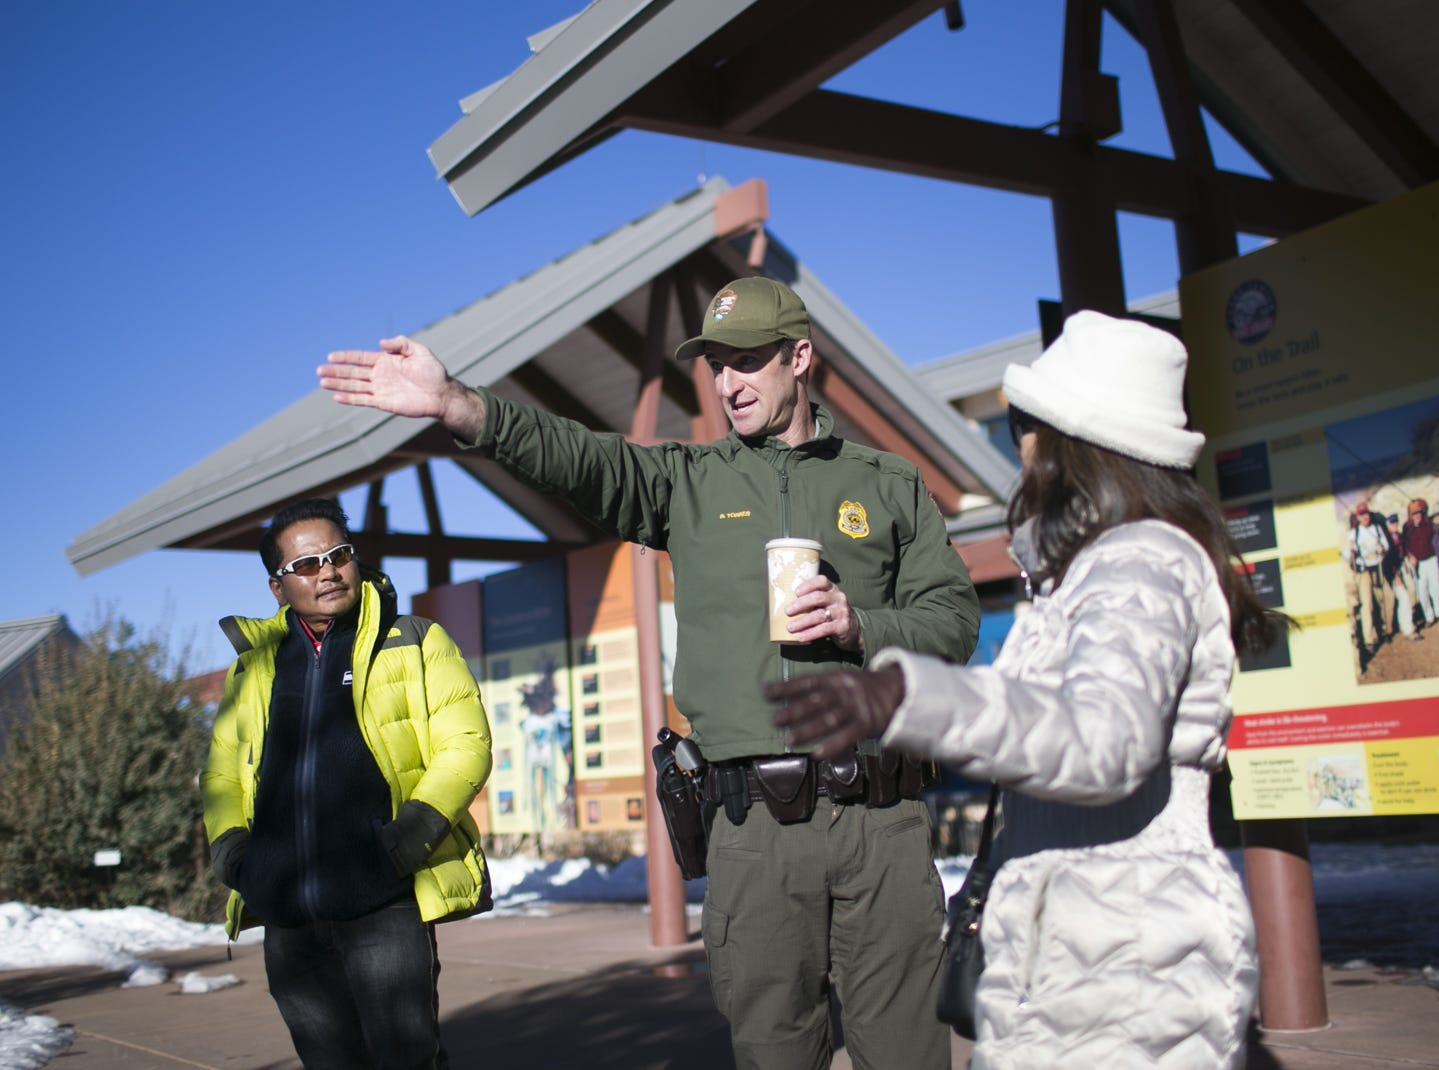 Brandon Torres (center), the Branch Chief of Emergency Services at Grand Canyon National Park, directs guests in the park on Jan. 4, 2019. The park was staffed at minimum capacity due to the government shutdown but retained much of its services due to an executive order issued by Arizona Gov. Doug Ducey to run the park with state funds in the event of a shutdown.